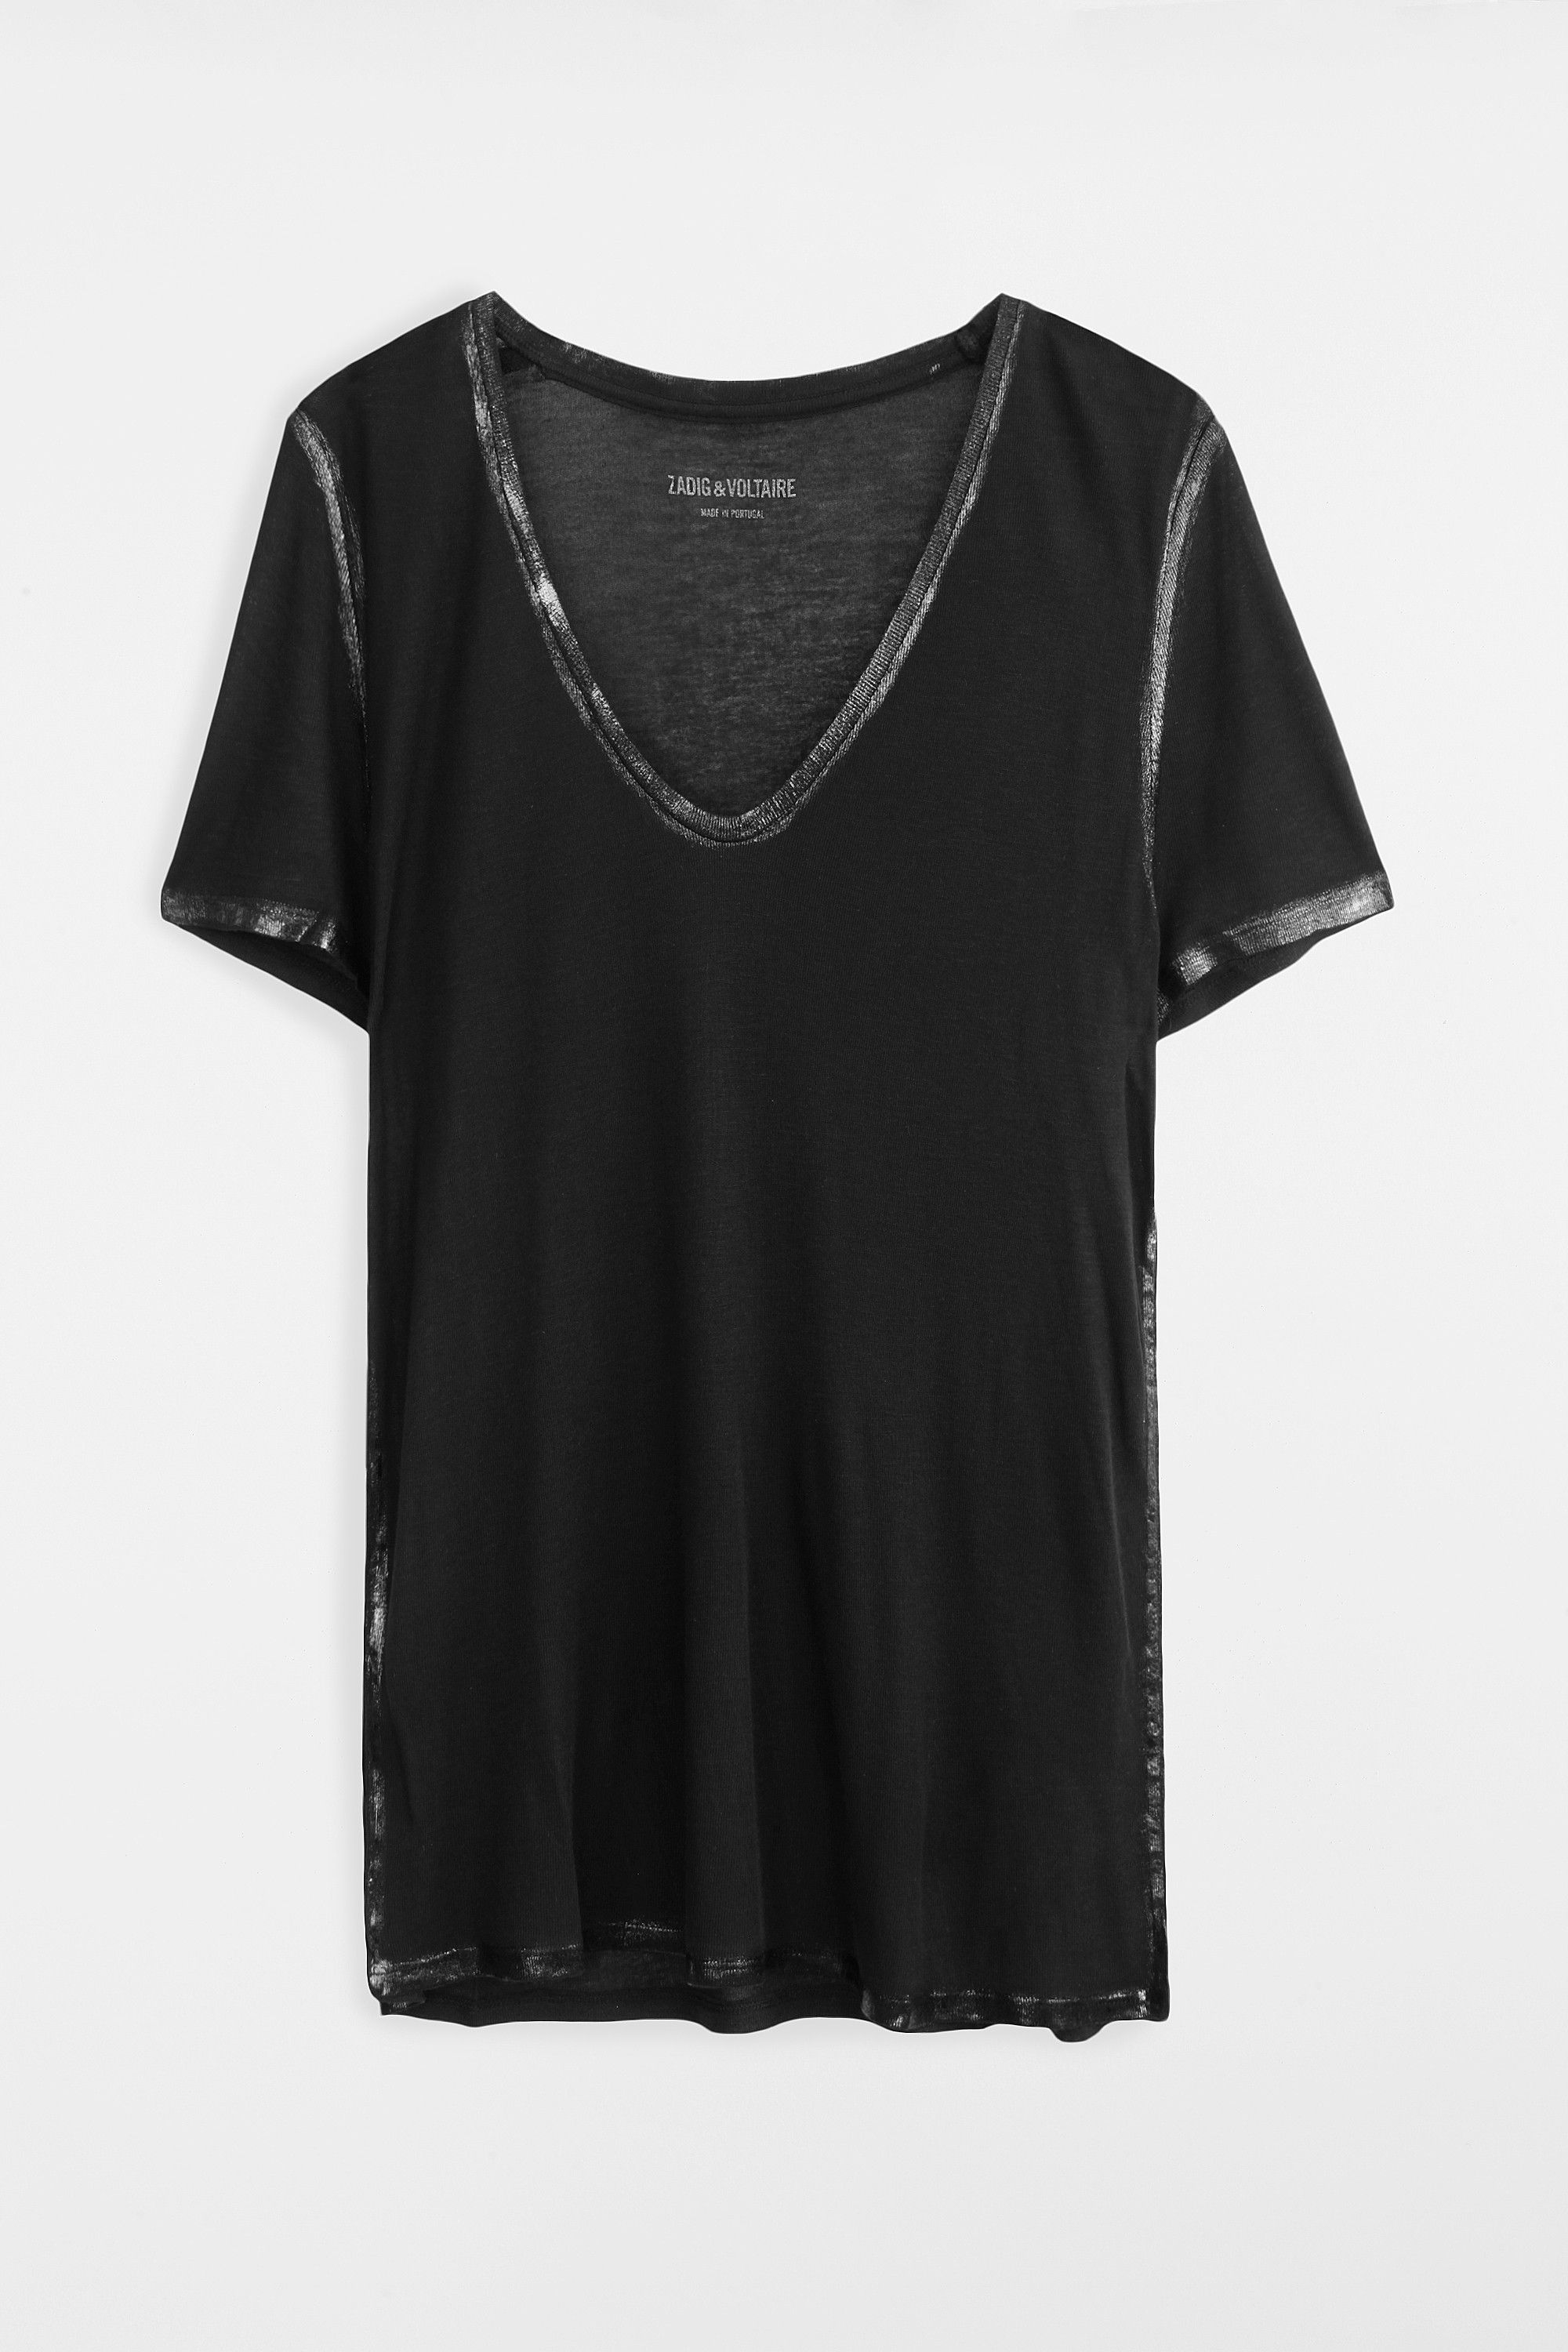 Free Shipping Visit shortsleeved buttoned T-shirt - Black Zadig & Voltaire The Cheapest For Sale Cheap Wholesale ZxszDD